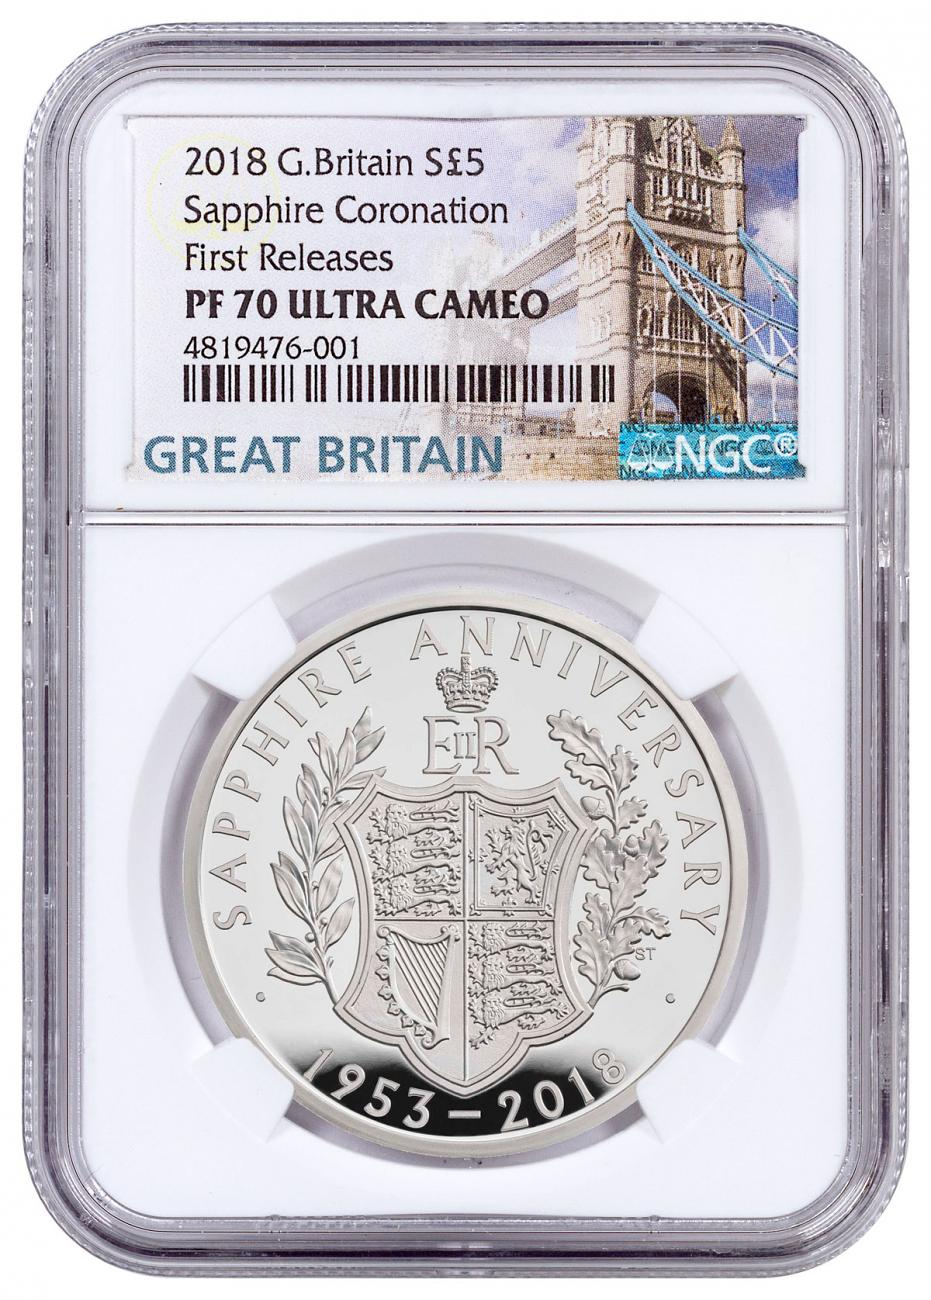 2018 Great Britain Sapphire Coronation Silver Proof £5 Coin NGC PF70 UC FR Box with COA Tower Bridge Label